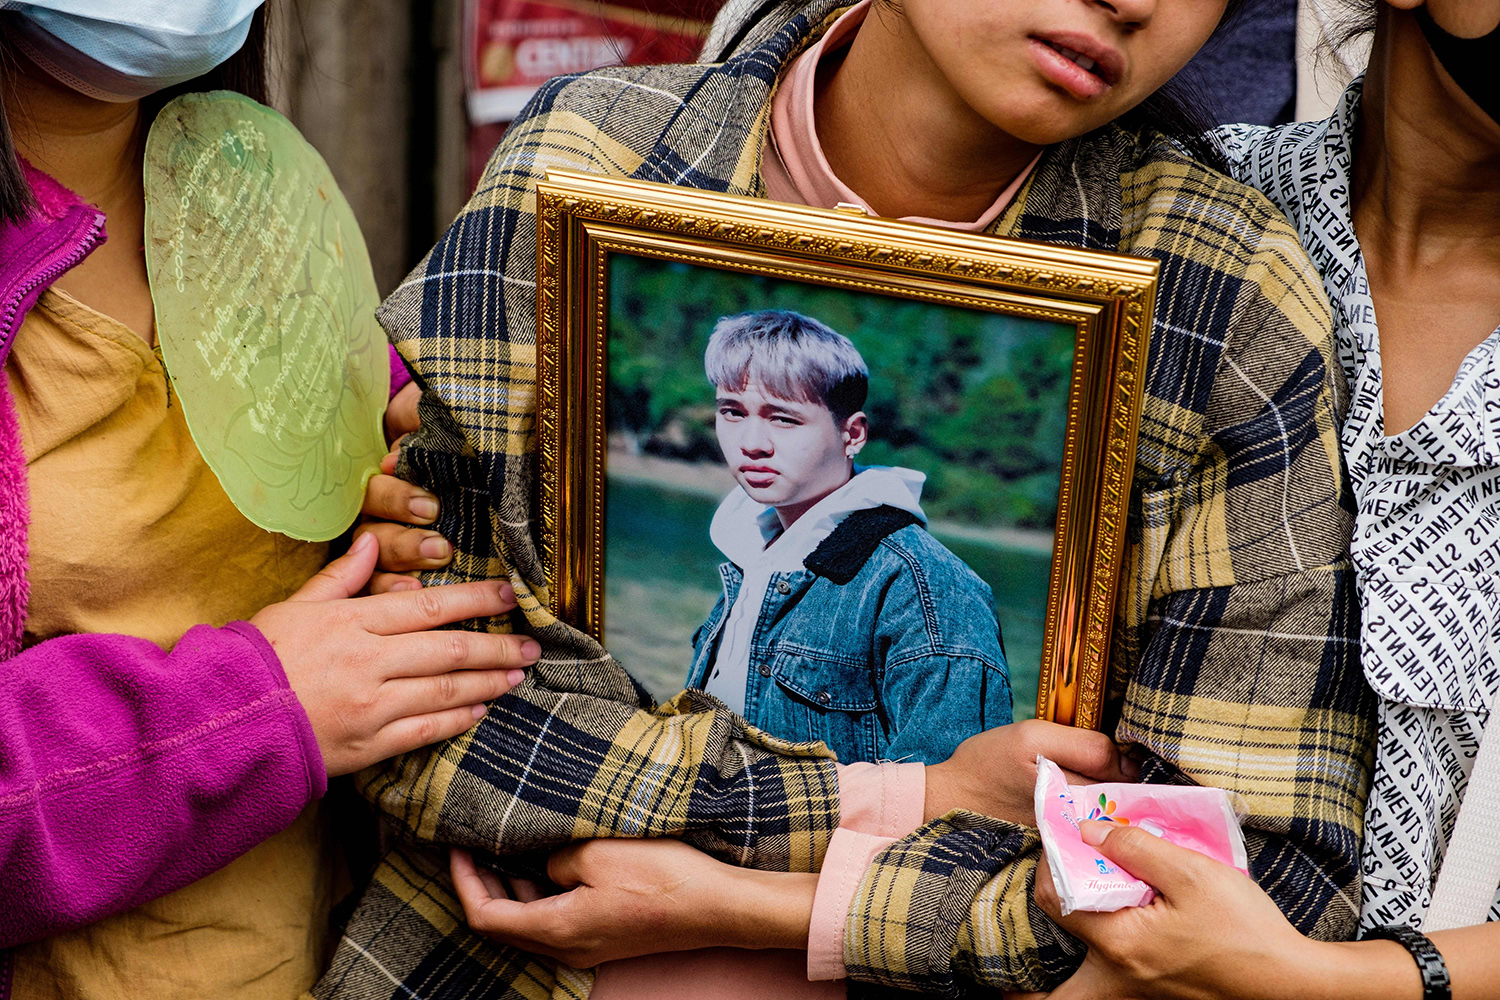 A relative holds the portrait of a protester who died amid a crackdown on demonstrations against Myanmar's military coup during his funeral in Taunggyi, Shan state, on March 29. STR/AFP via Getty Images